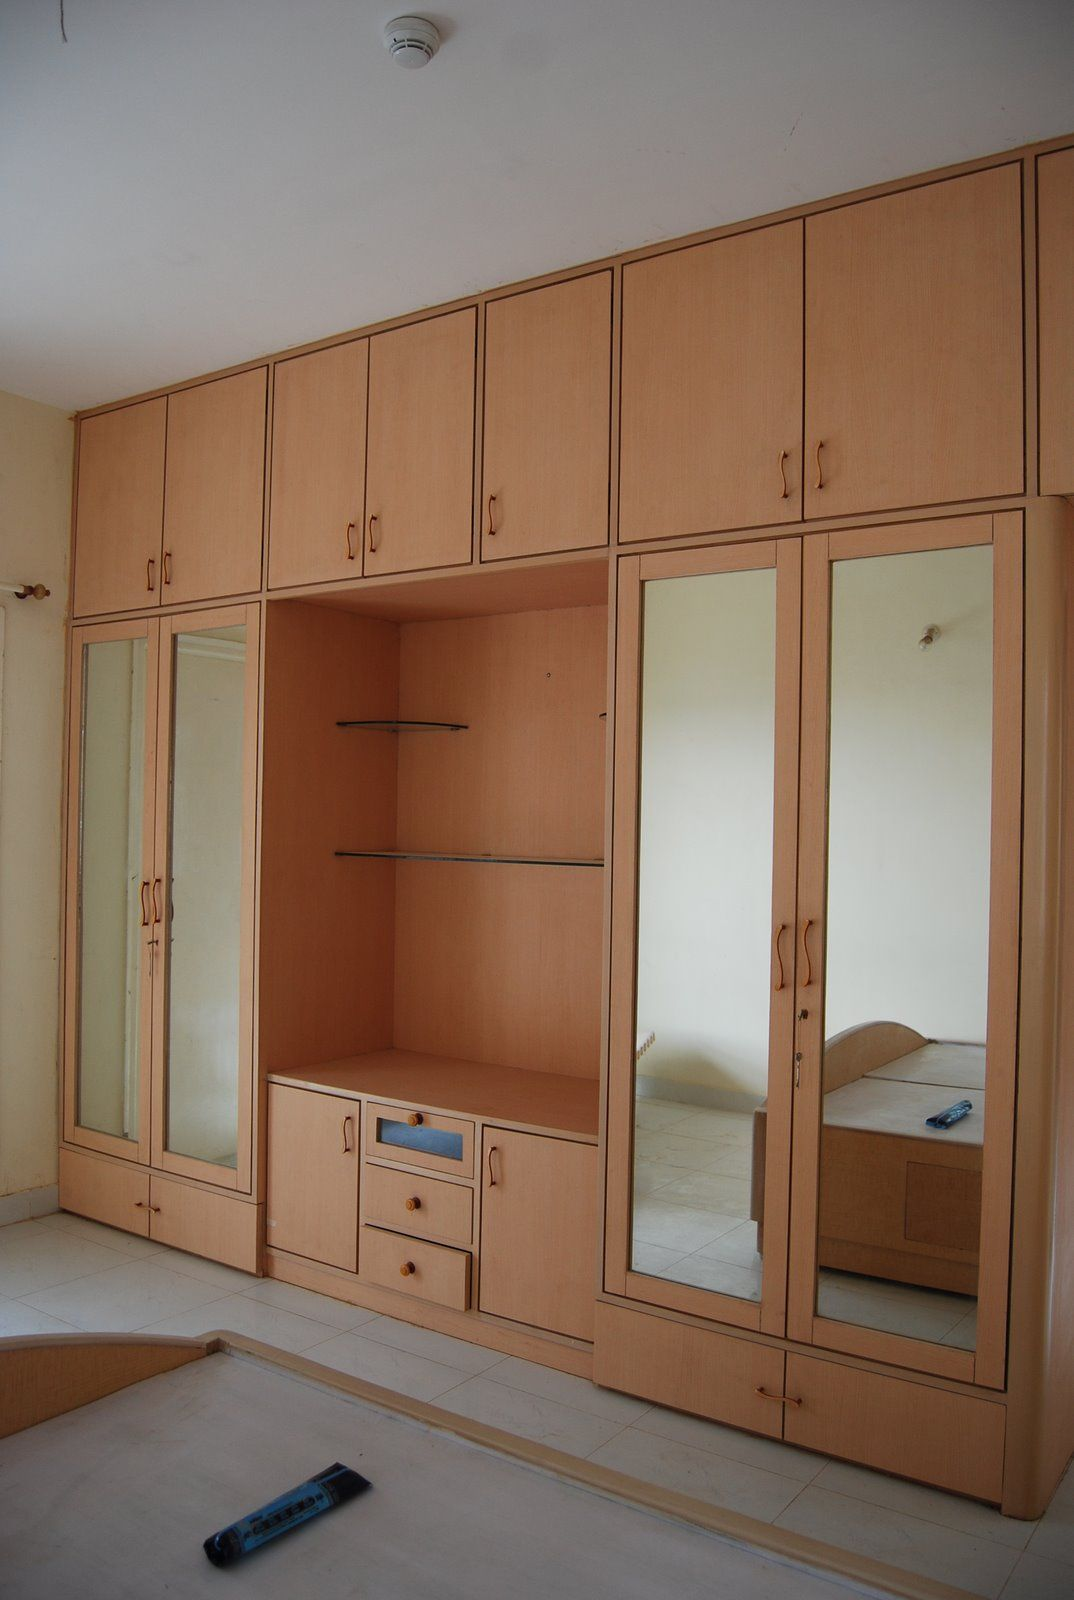 Bedroom Cabinet Designs. Bedroom Wardrobe Design Playwood Wadrobe With  Cabinets Also Clothes Hangers Trendy Cabinet